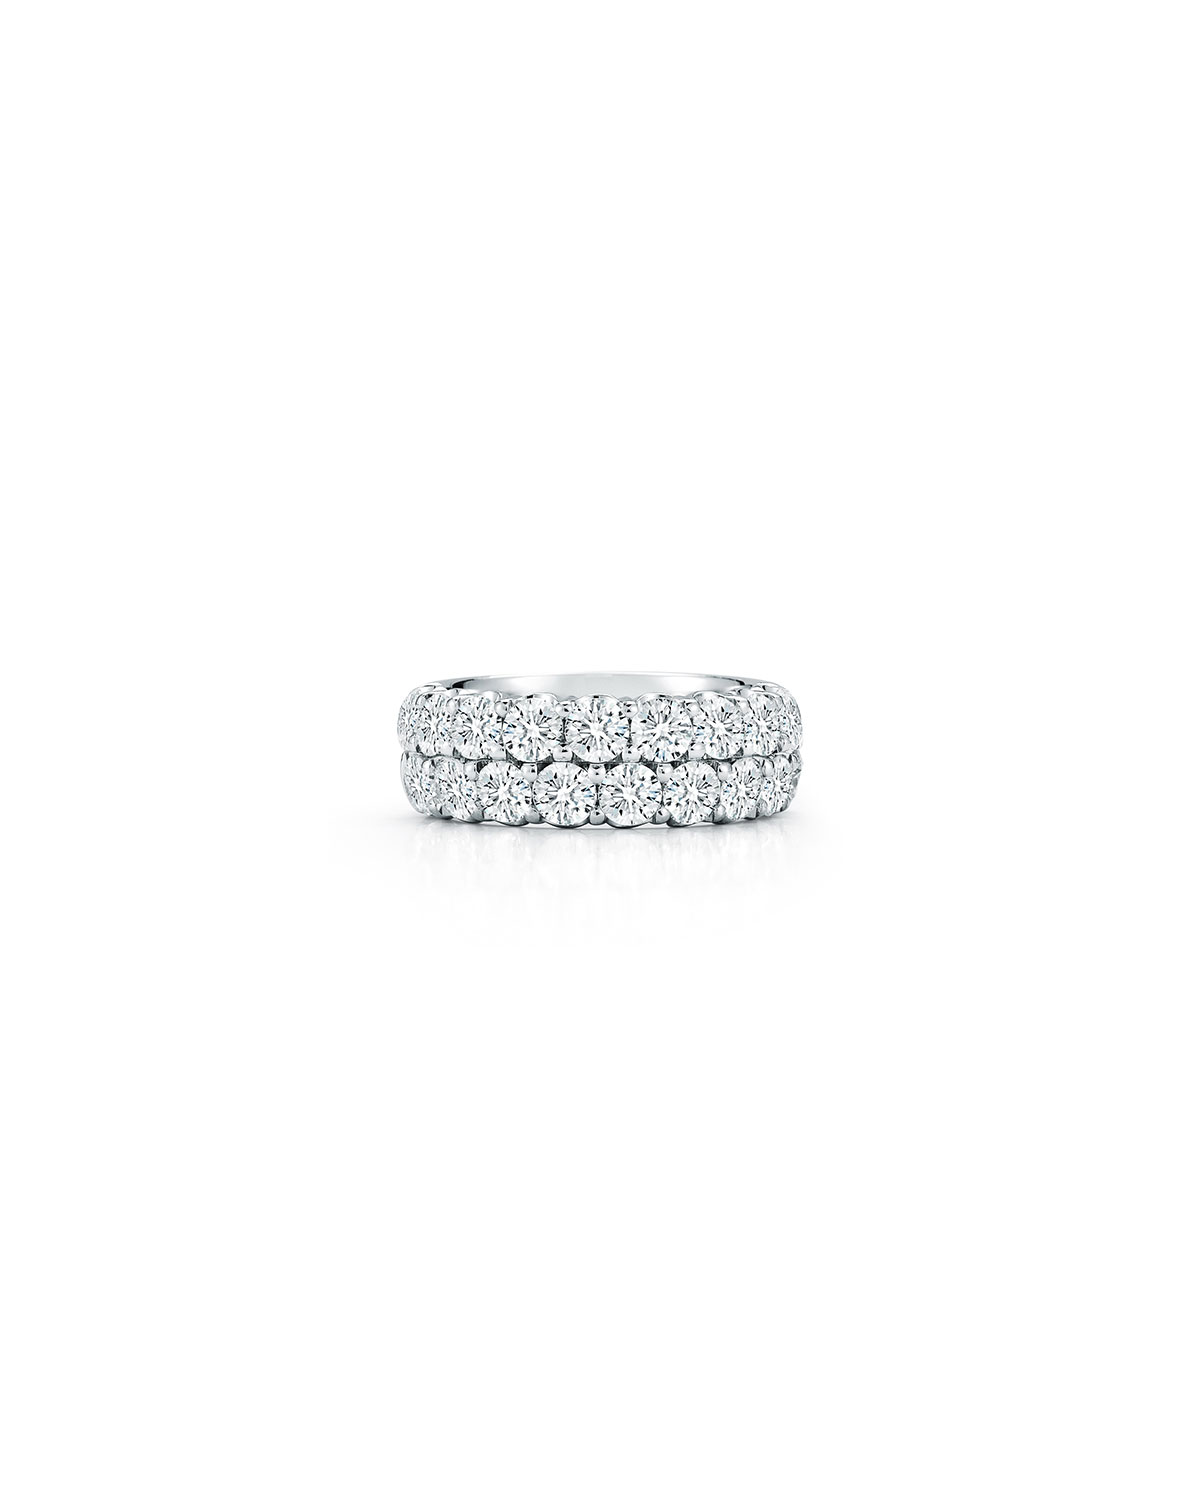 Two-Row Diamond Eternity Band Ring in 18K White Gold